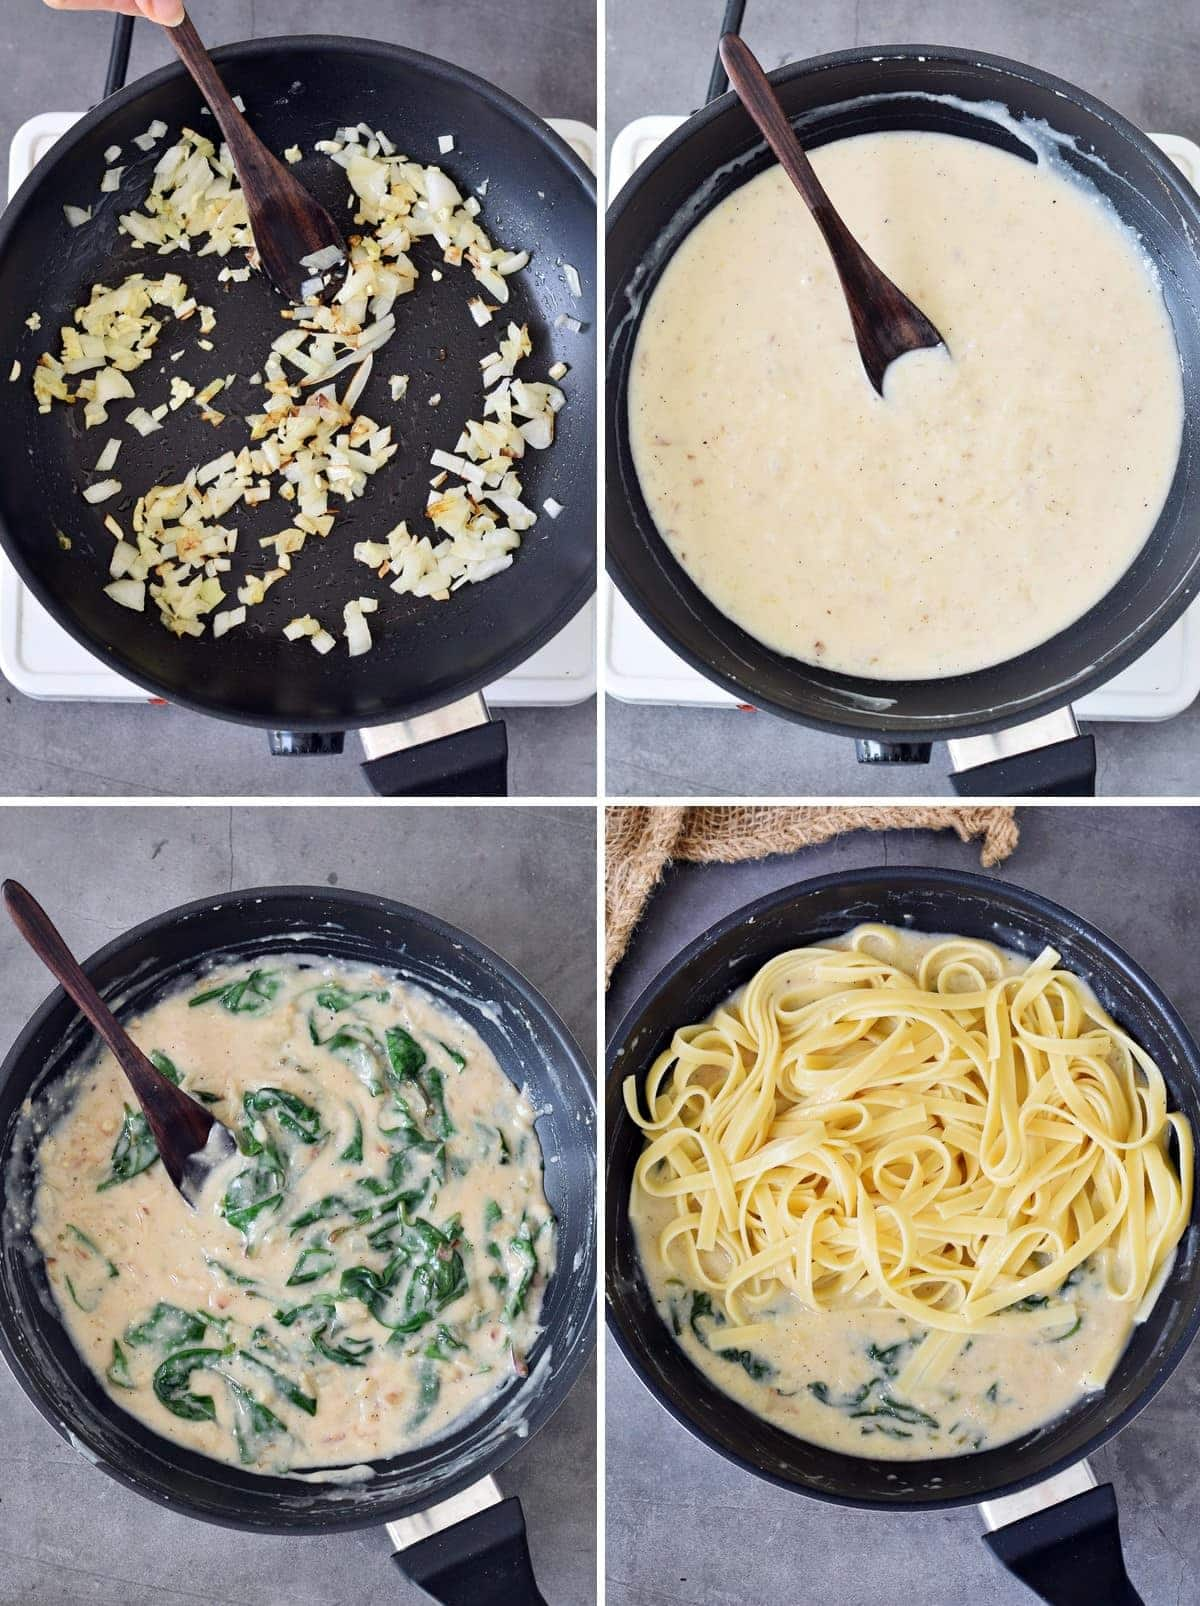 4 step-by-step photos showing how to make creamy noodles with spinach